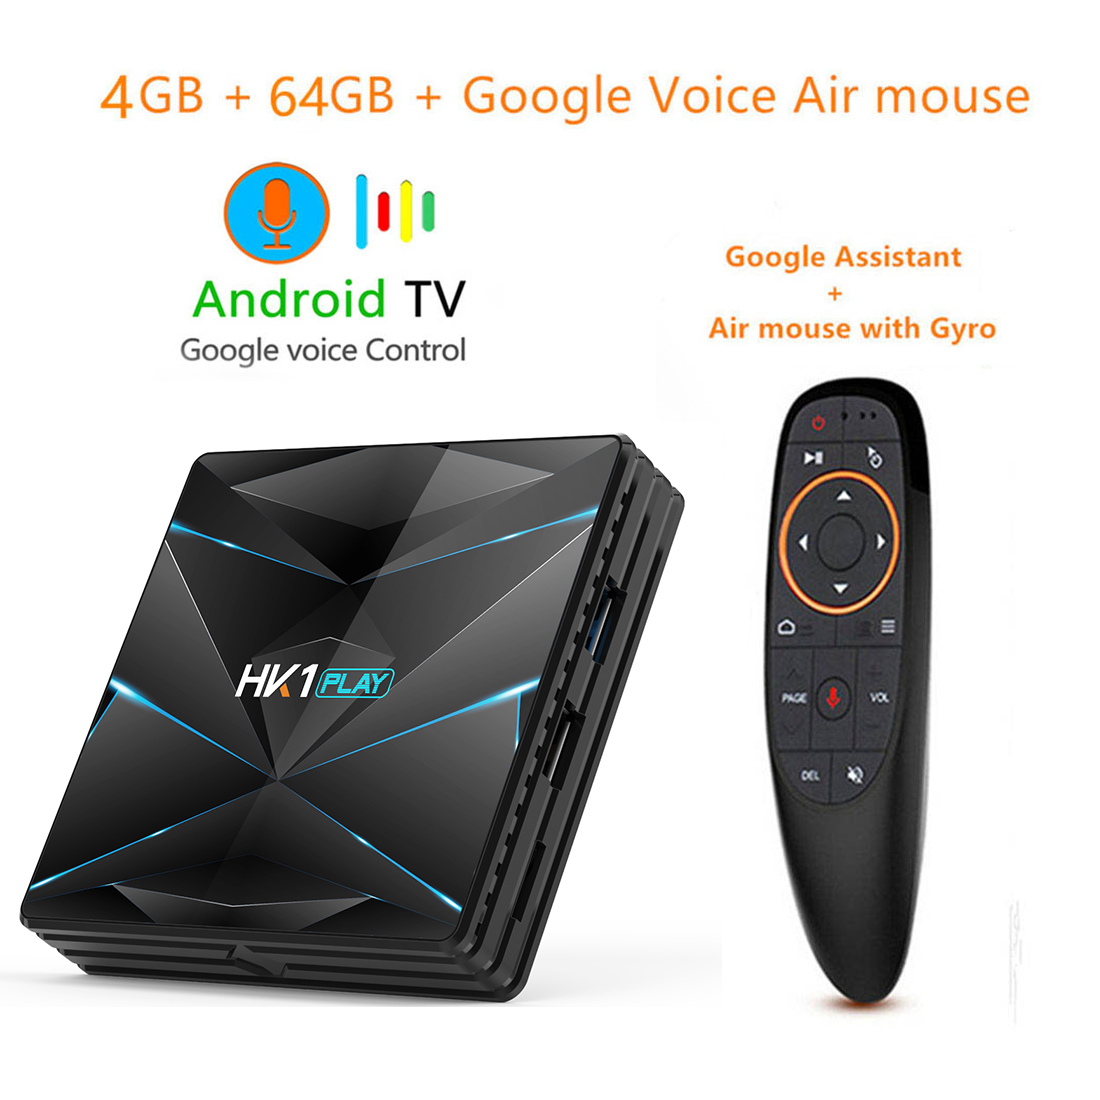 Android 9 0 Smart TV BOX Google Assistant S905X2 4G 64G TV receiver 4K Very fast